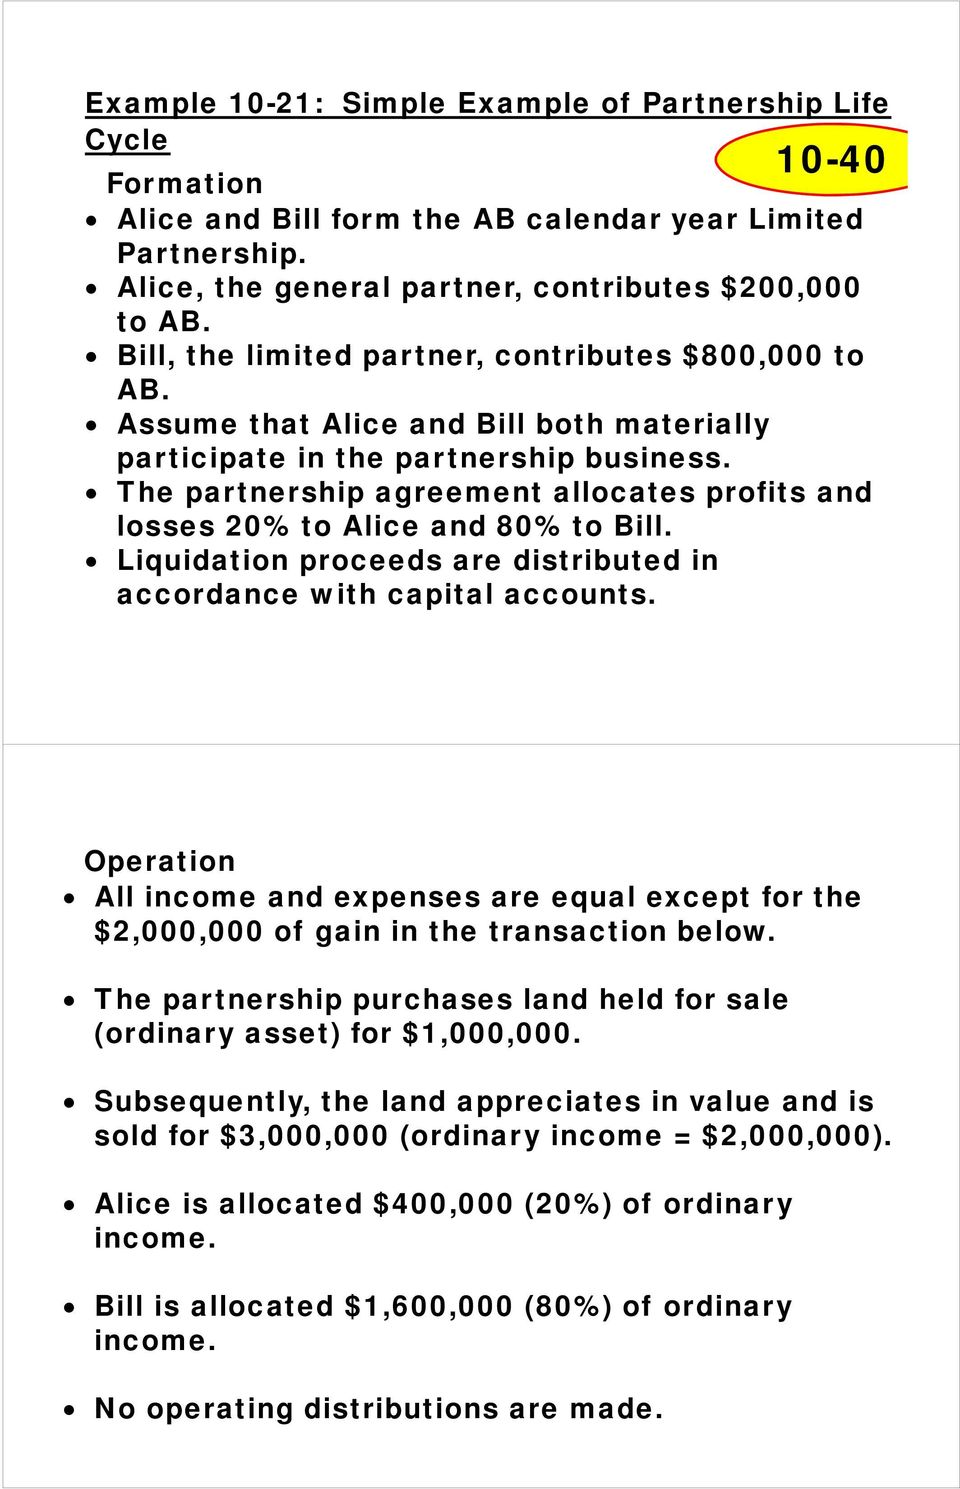 The partnership agreement allocates profits and losses 20% to Alice and 80% to Bill. Liquidation proceeds are distributed in accordance with capital accounts.